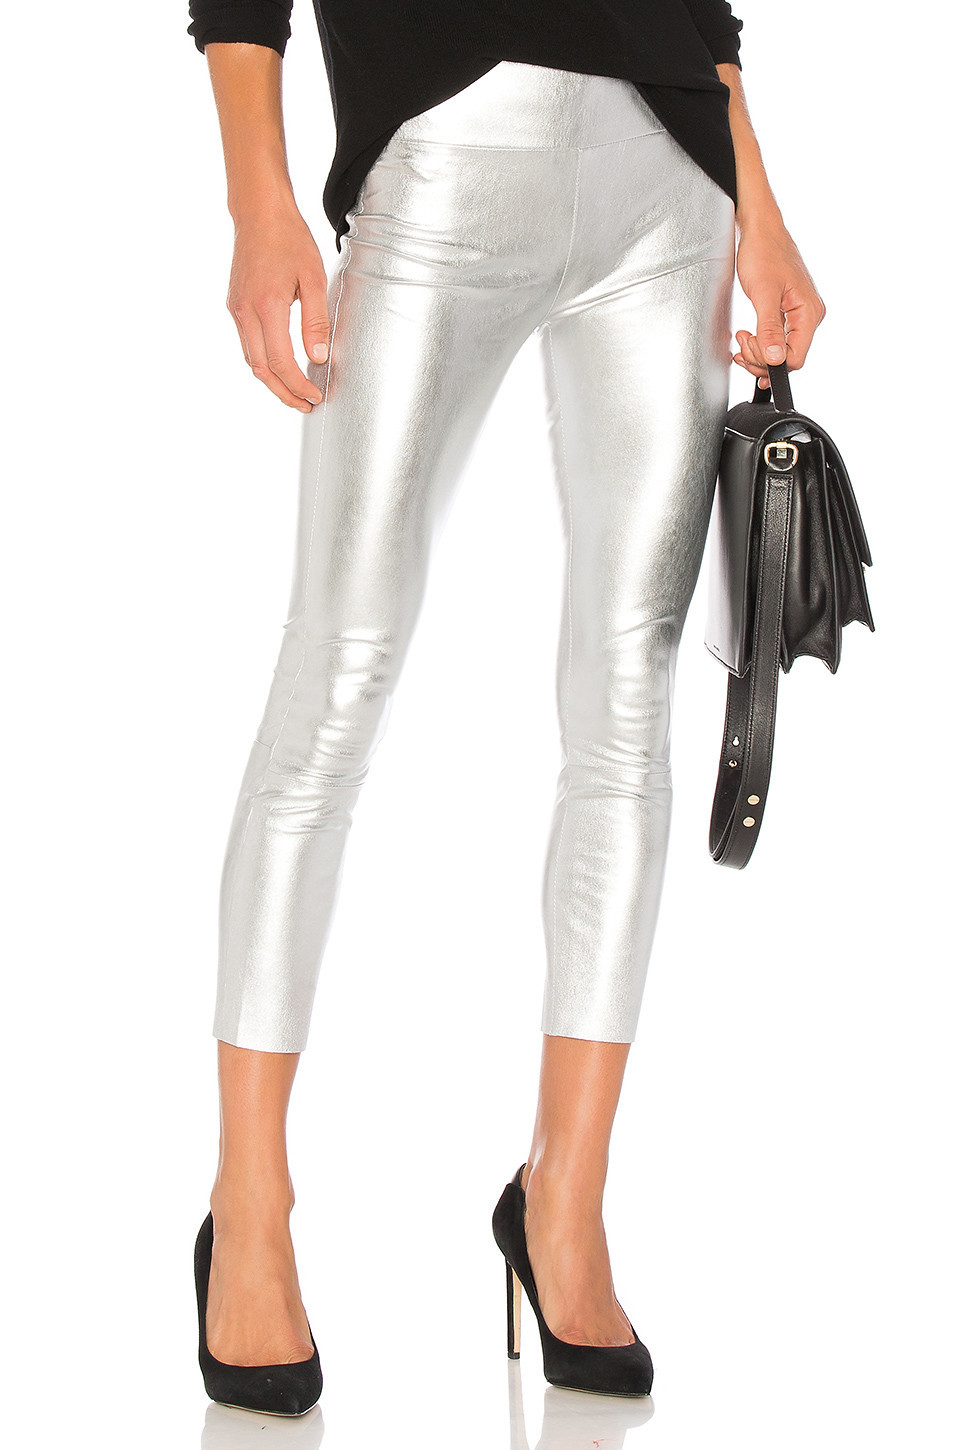 SPRWMN High Waist 3/4 Legging in metallic / silver